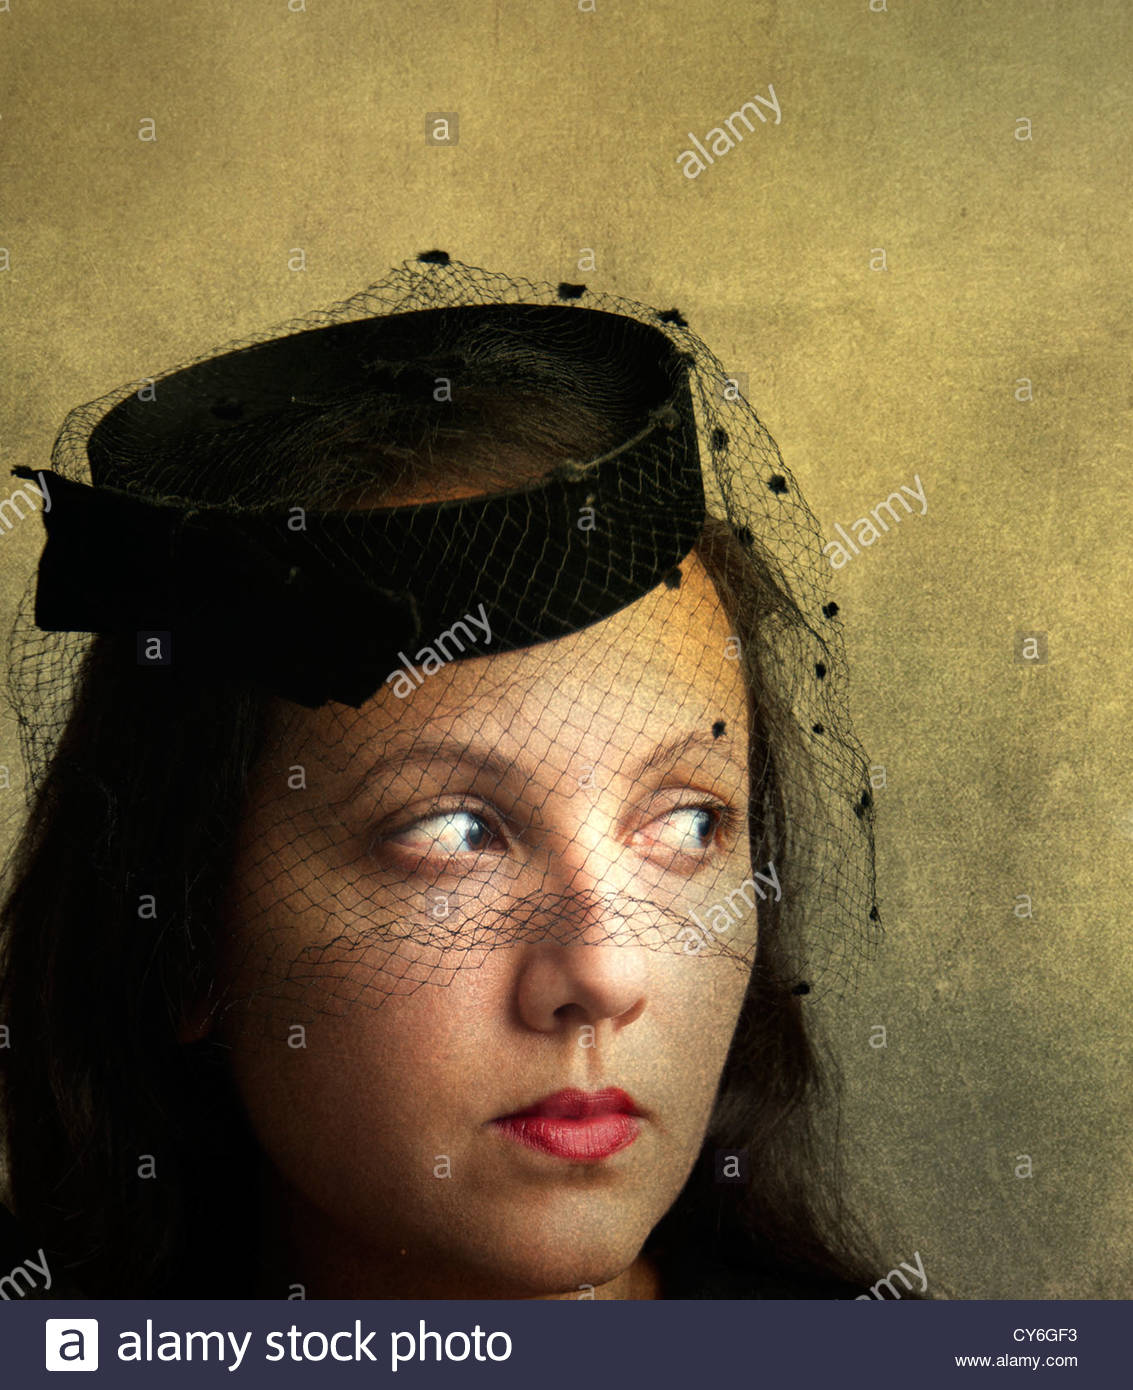 Portrait of mysterious beautiful woman with old fashioned pillbox hat with veil - Stock Image